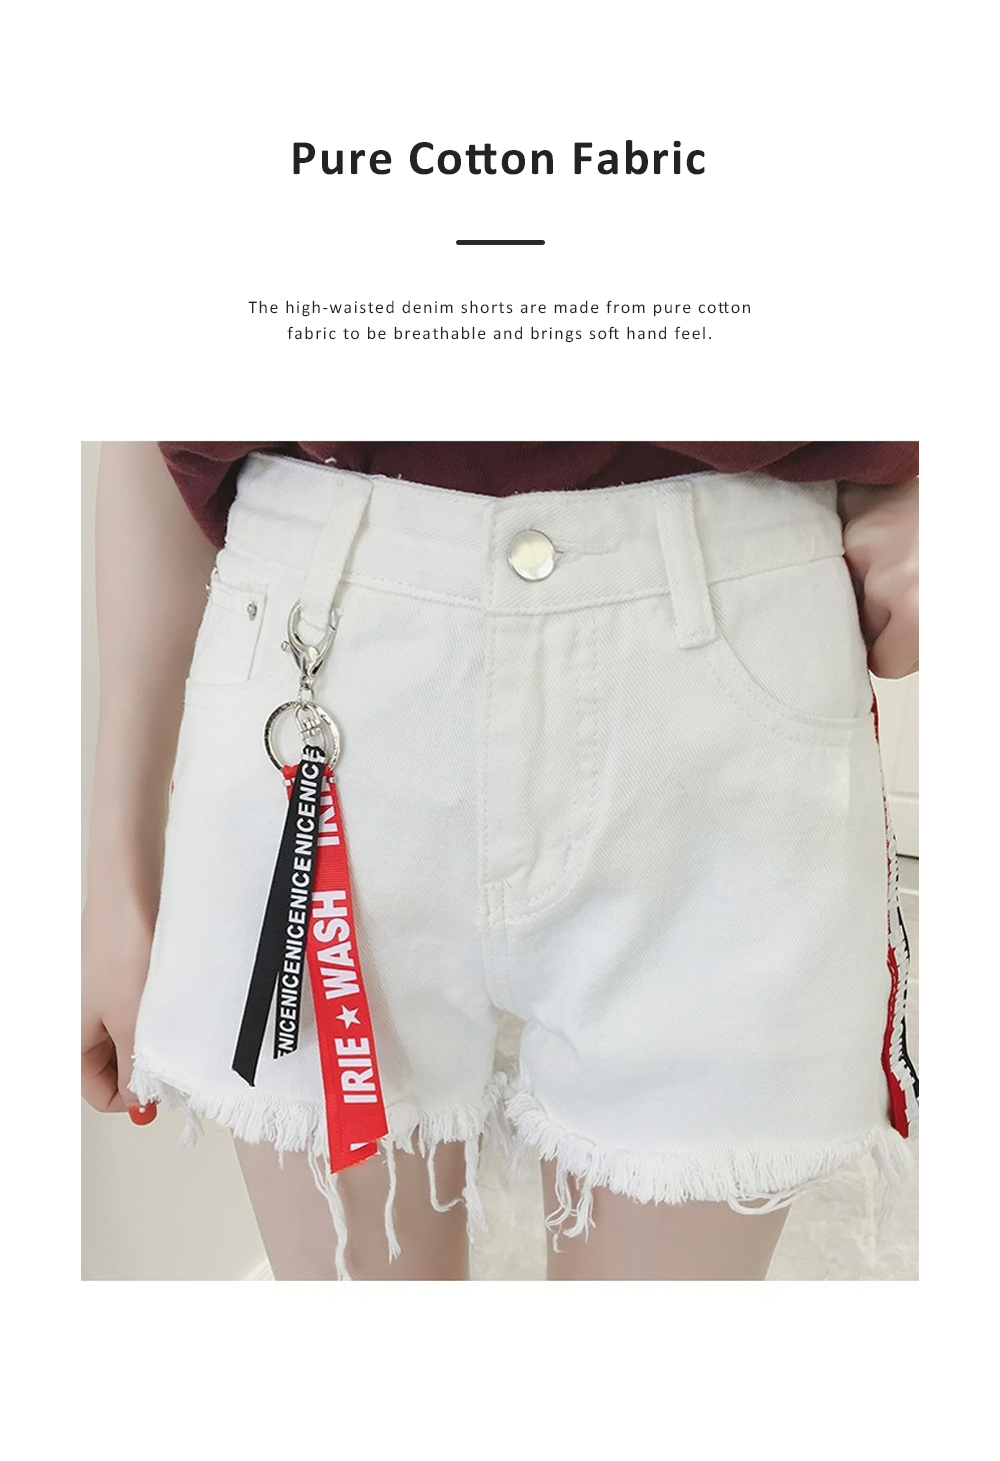 2019 High-waisted Denim Shorts Jeans Pants for Girl Students Wear Summer Loose Version Short Pants in Pure Black Color or White Color 1